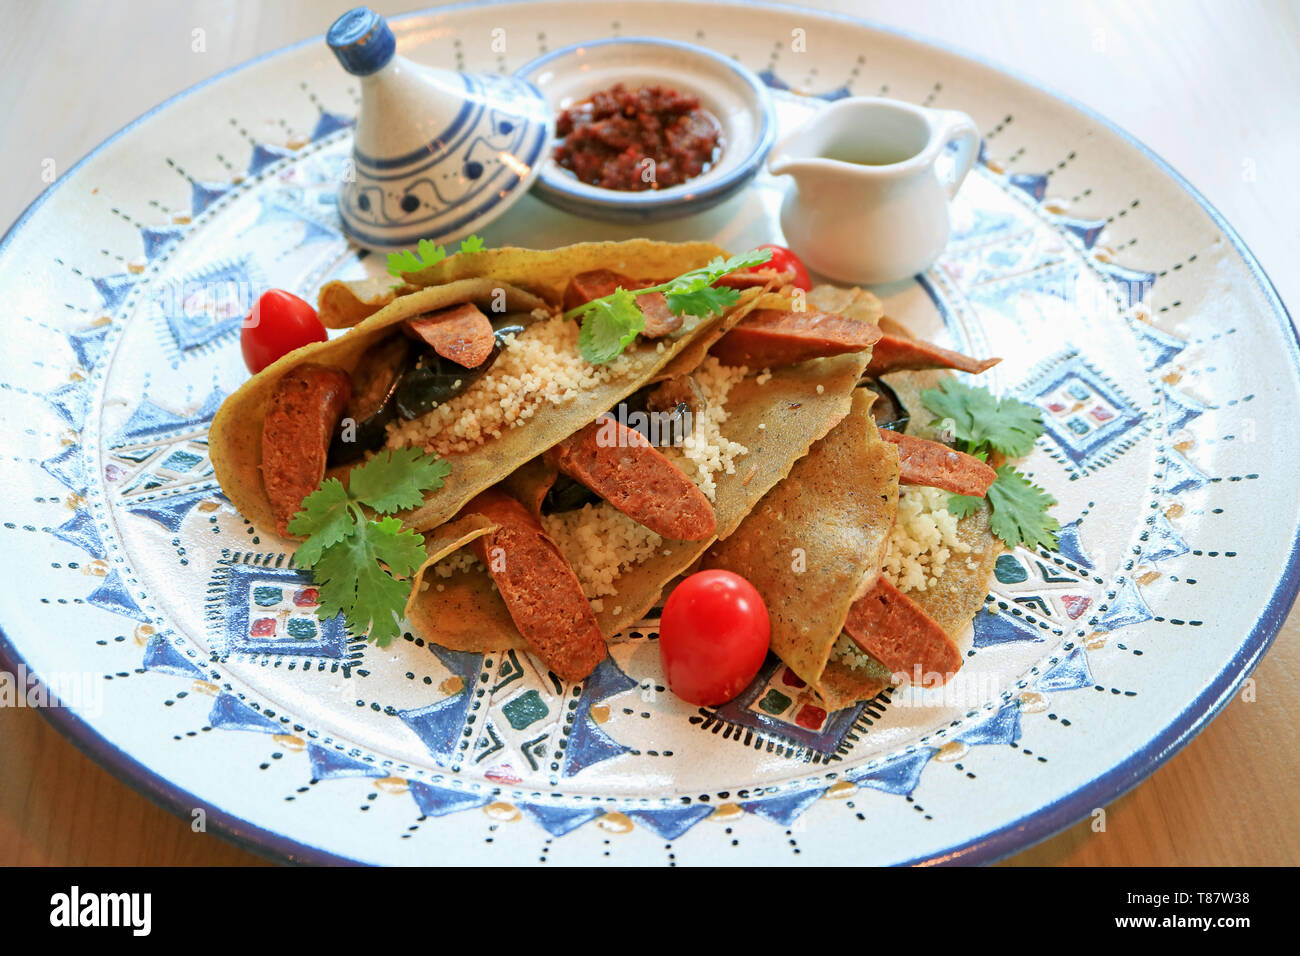 Delectable Moroccan Style Savory Crepes with Couscous, Moroccan Sausages and Eggplants - Stock Image